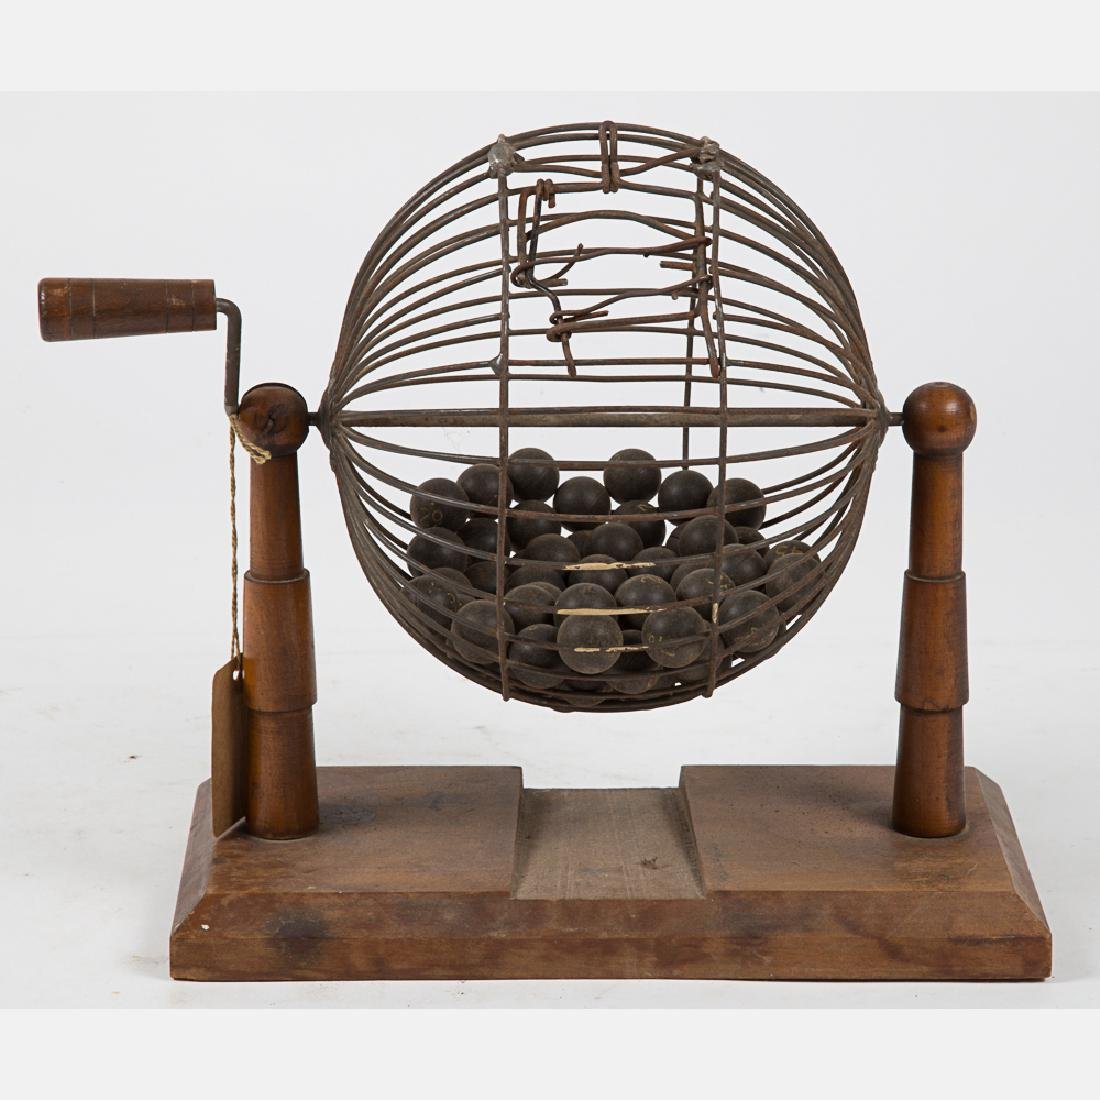 A Vintage Wood and Metal Wire Bingo Ball Cage, 20th